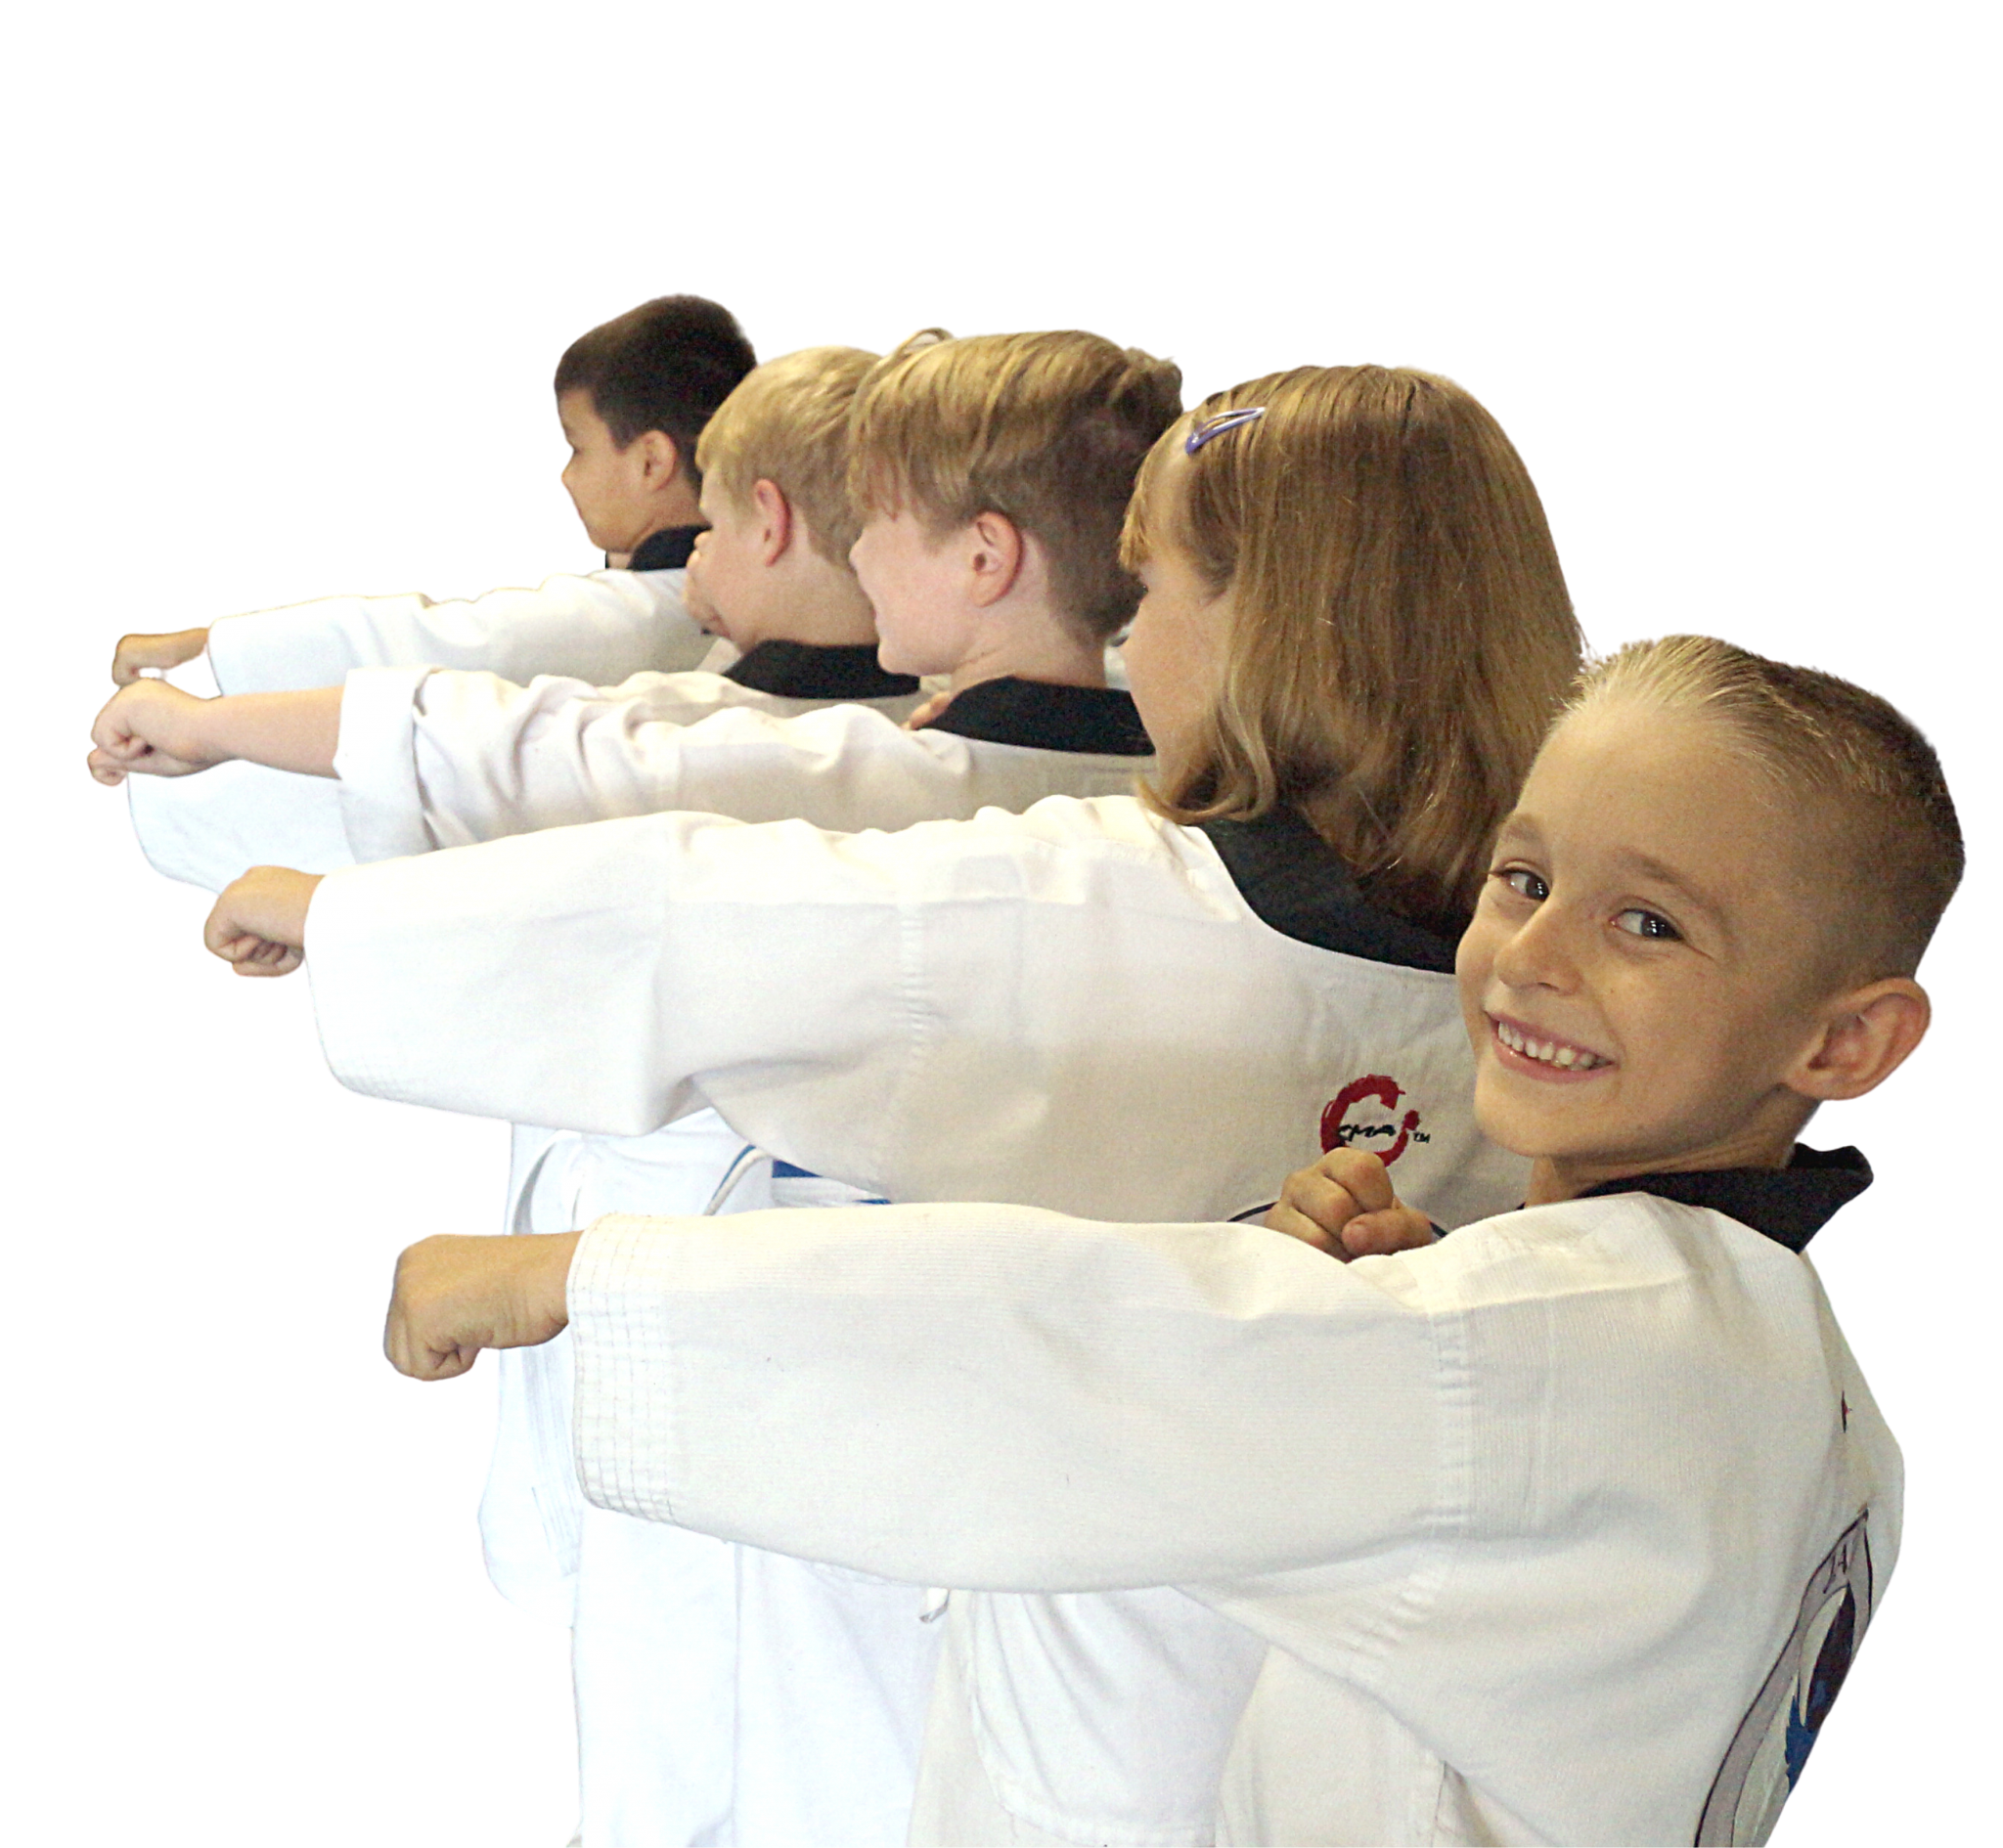 young students in middle section punch position